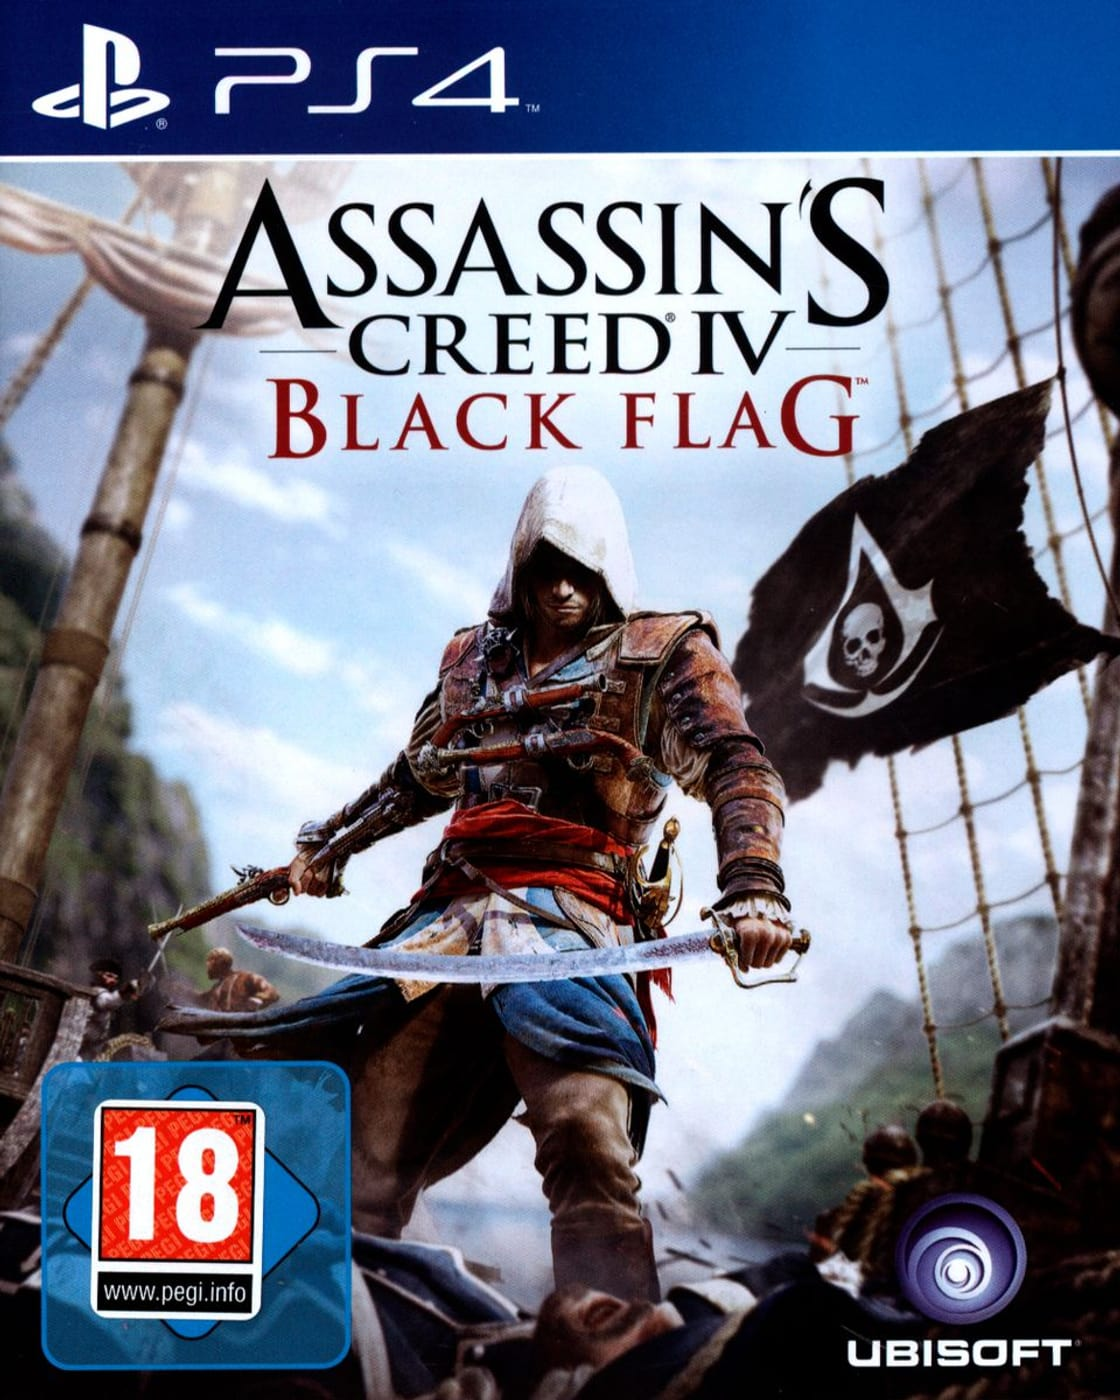 Ps4 Assassin S Creed Iv Black Flag Box Migros